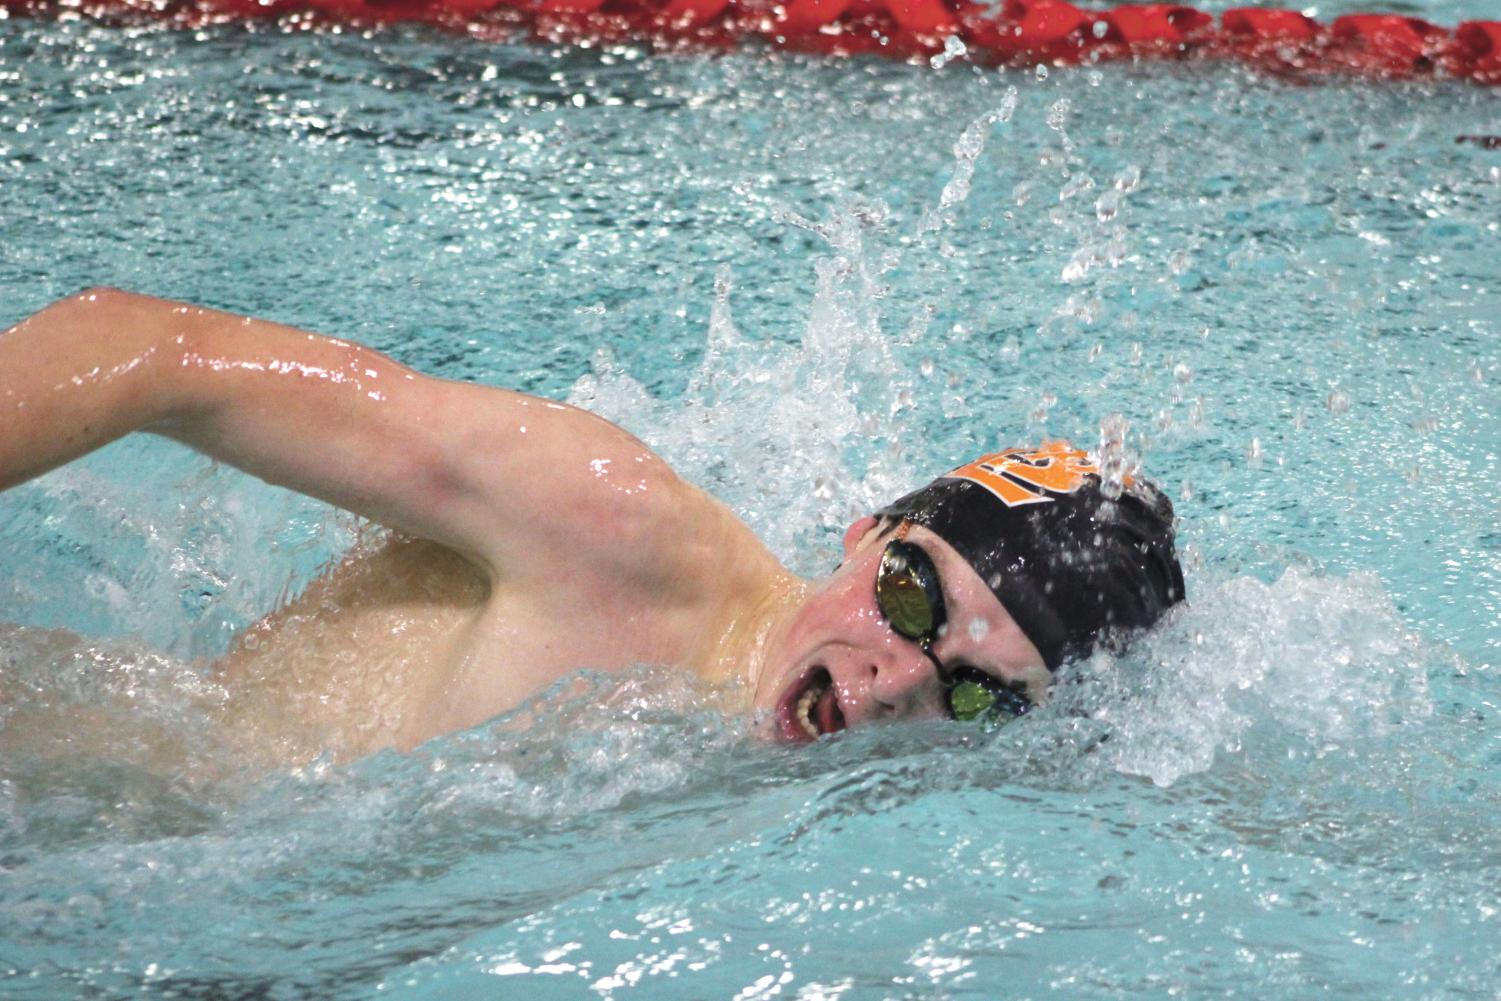 Ben St. Clair places third in the 200-yard freestyle during the meet against Benilde. They faced off at the St. Louis Park Middle School and came away with the win, beating Benilde by four points. The team's next meet is at 6 p.m. Jan. 17 at the high school against Robbinsdale Cooper.